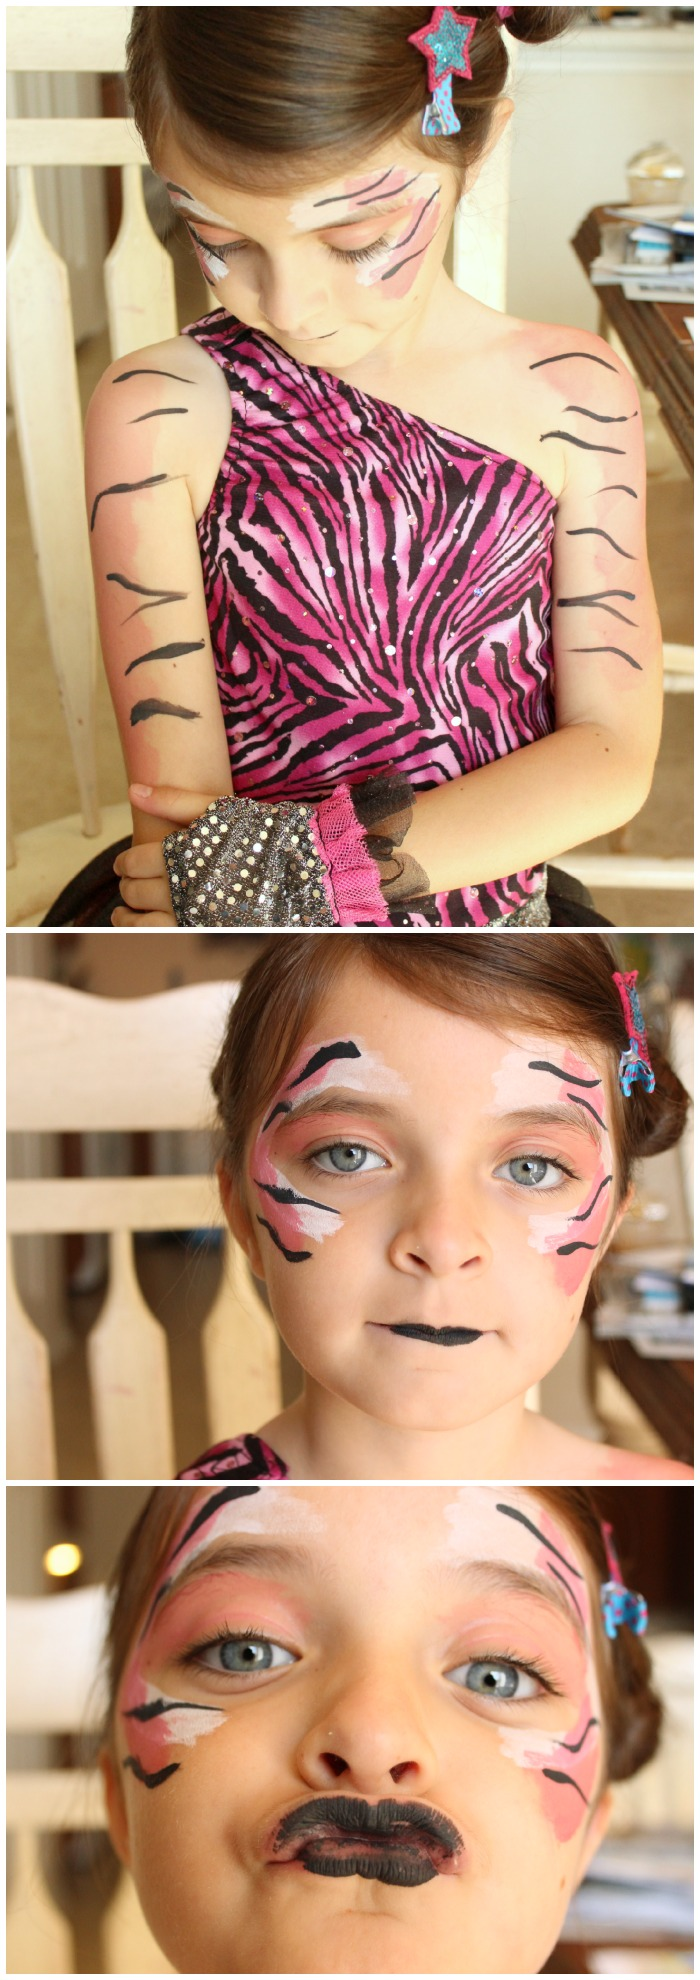 Fun with facepaint: Three colors of face paint equals one awesome costume